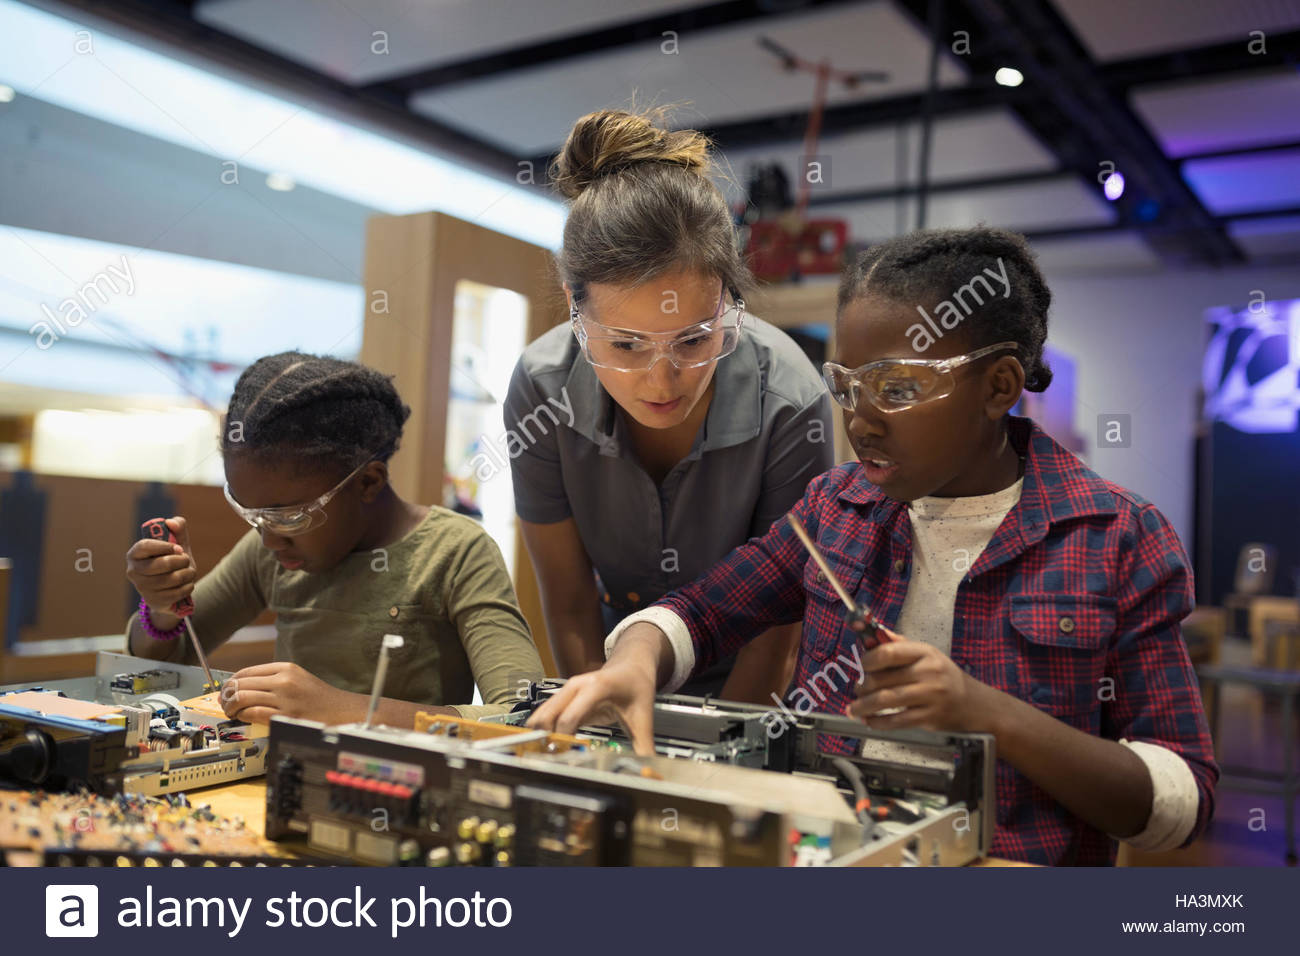 Scientist watching twin sisters assembling electronics in science center - Stock Image